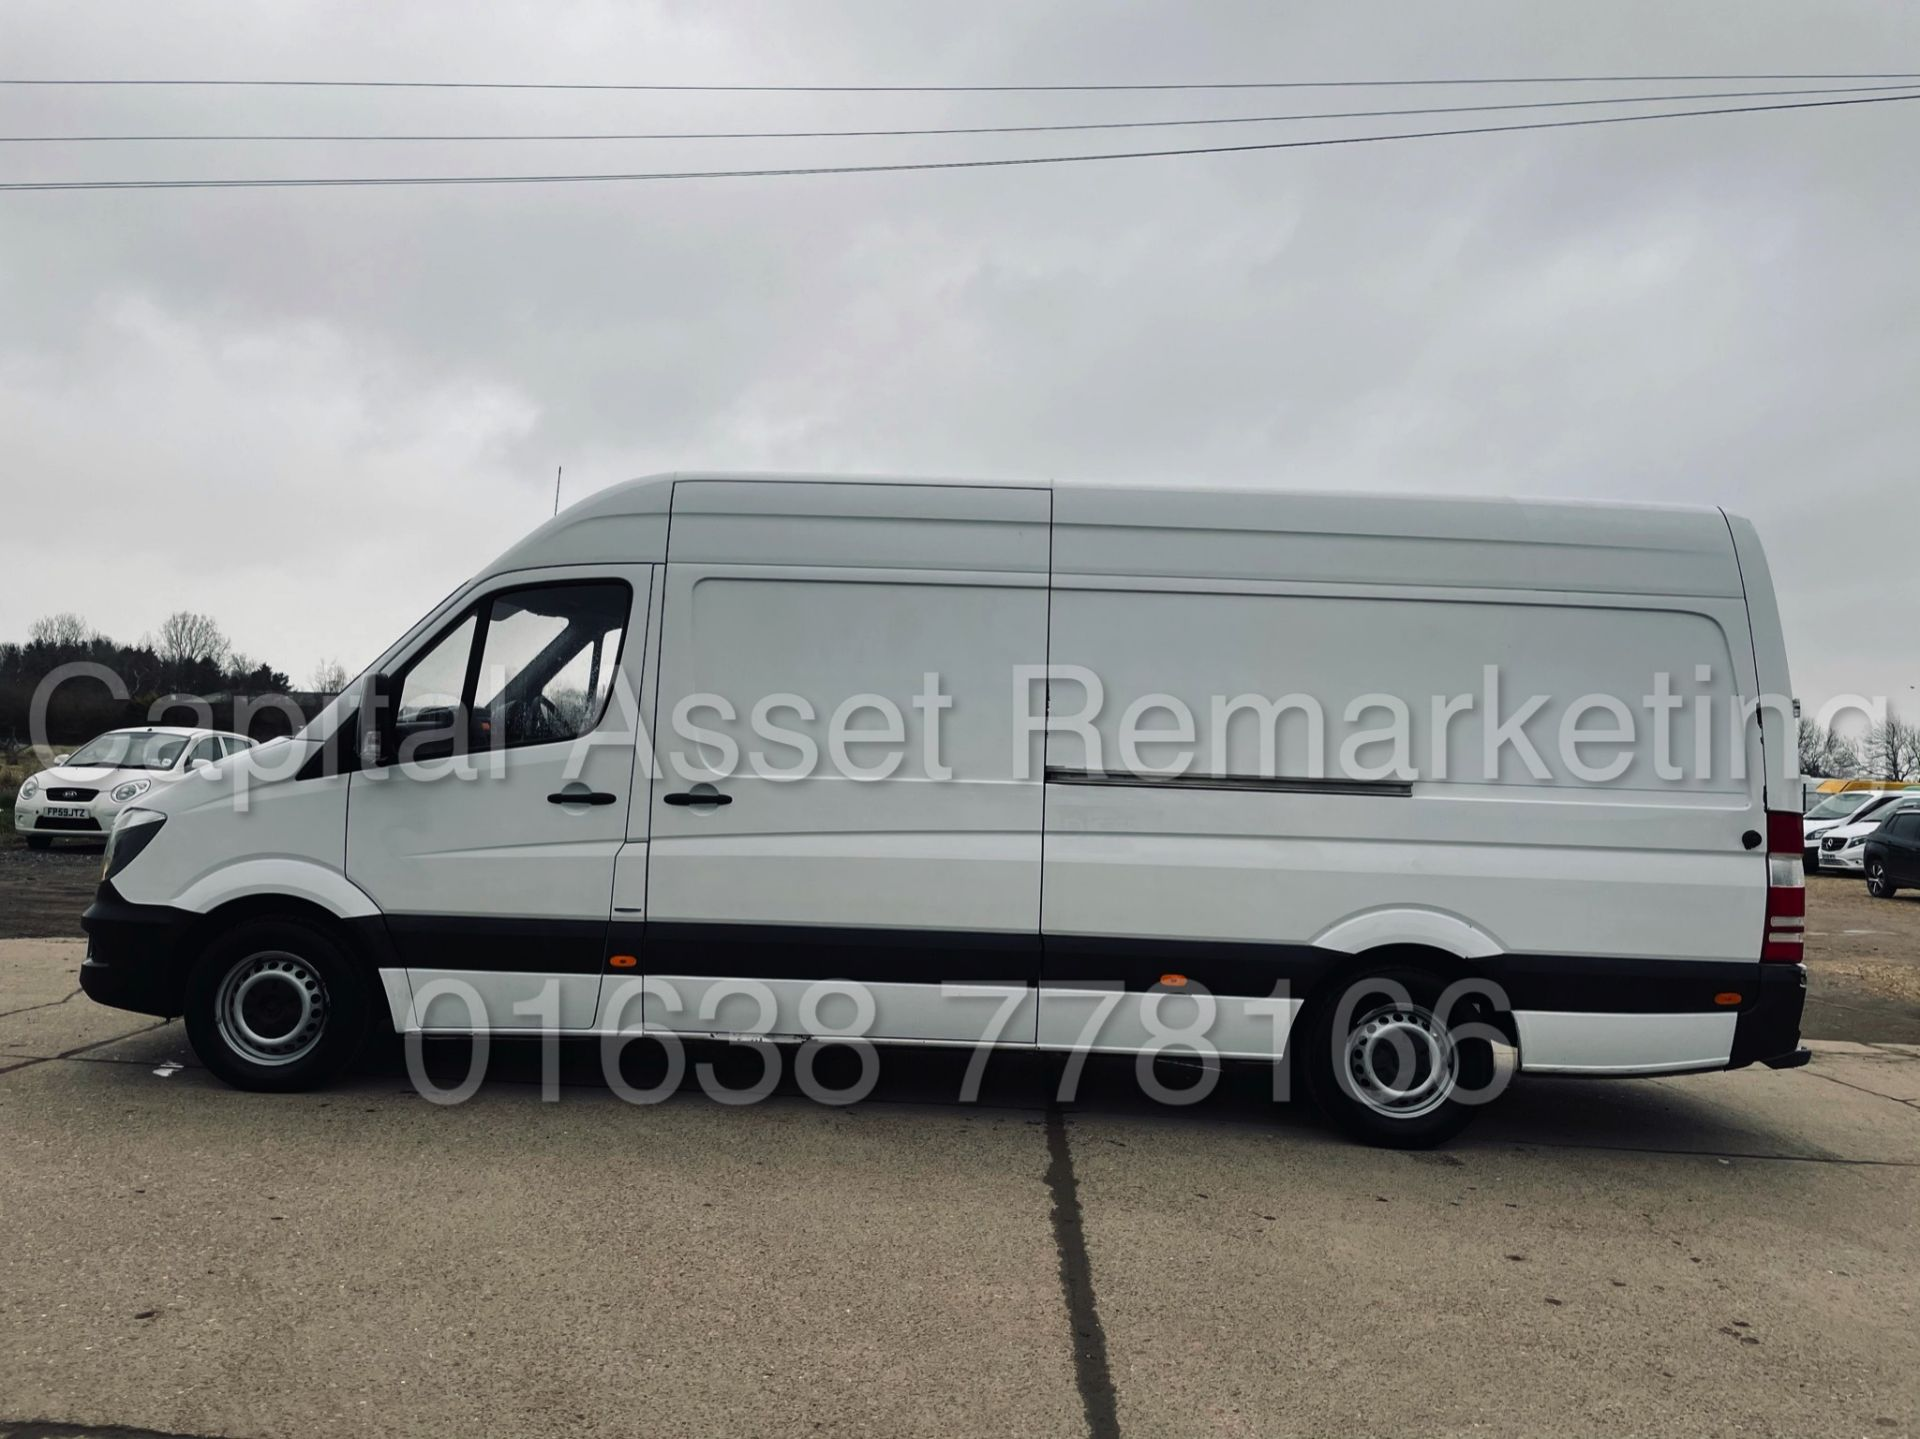 (On Sale) MERCEDES-BENZ SPRINTER 314 CDI *LWB HI-ROOF* (67 REG - EURO 6) '140 BHP-6 SPEED' (1 OWNER) - Image 8 of 37